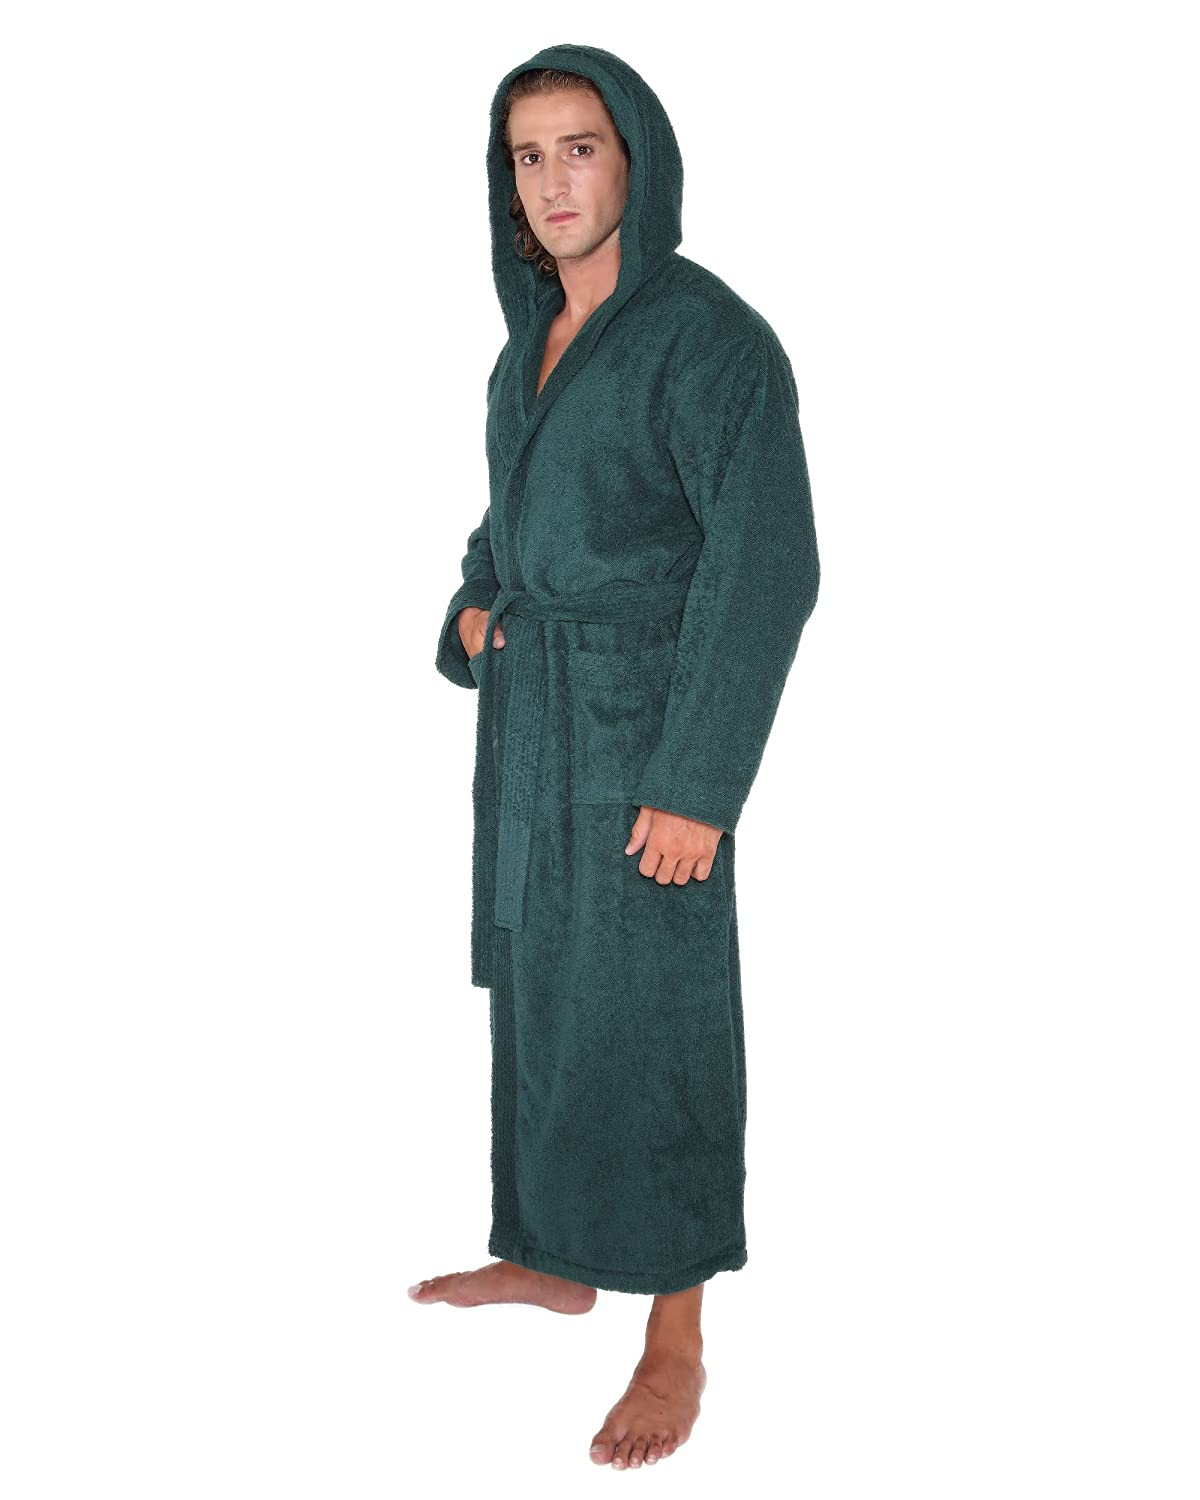 Arus Women's Men's Pacific Style Full Length Hooded Turkish Cotton Bathrobe